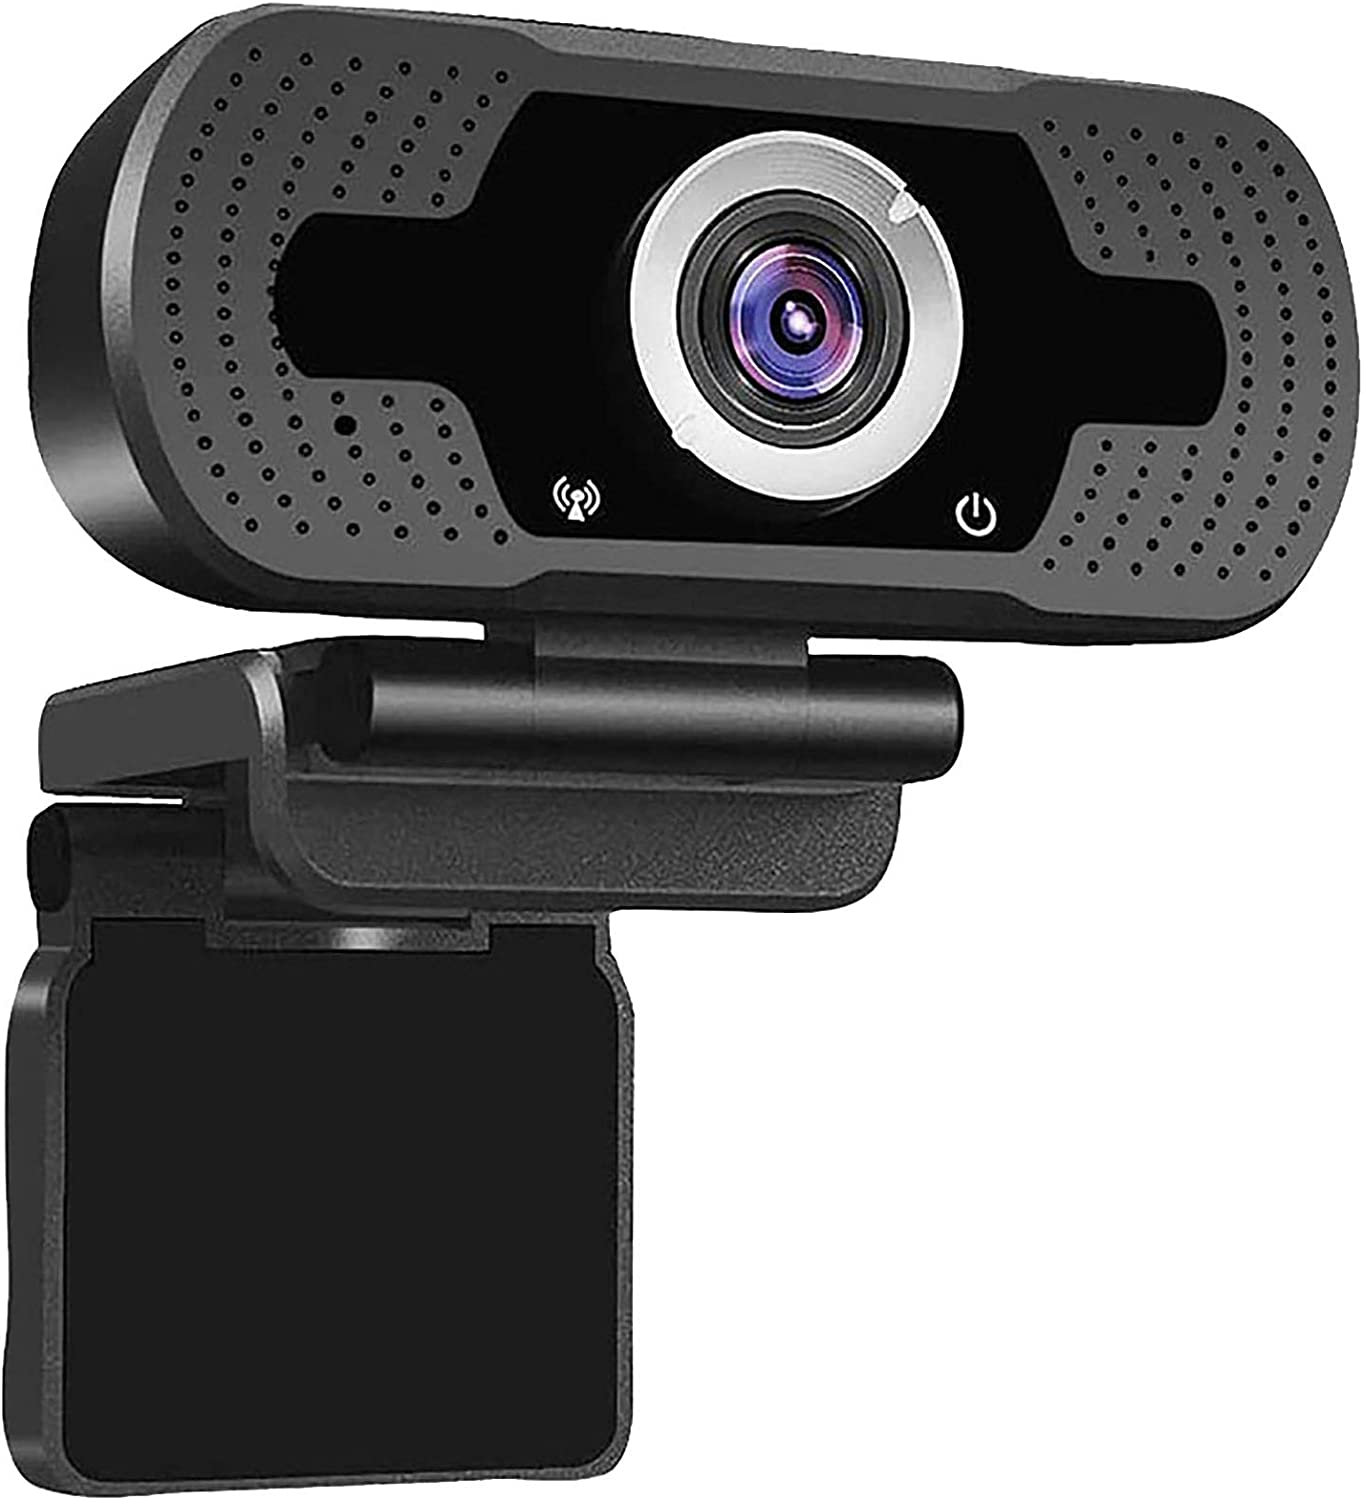 for Video Calling Recording and Conferencing Autofocus Streaming Web Camera for Computer and Laptop Webcam,Full HD 1080P Webcam with Built-in Noise-Reduction Microphone 110 Degree USB PC Web Cam